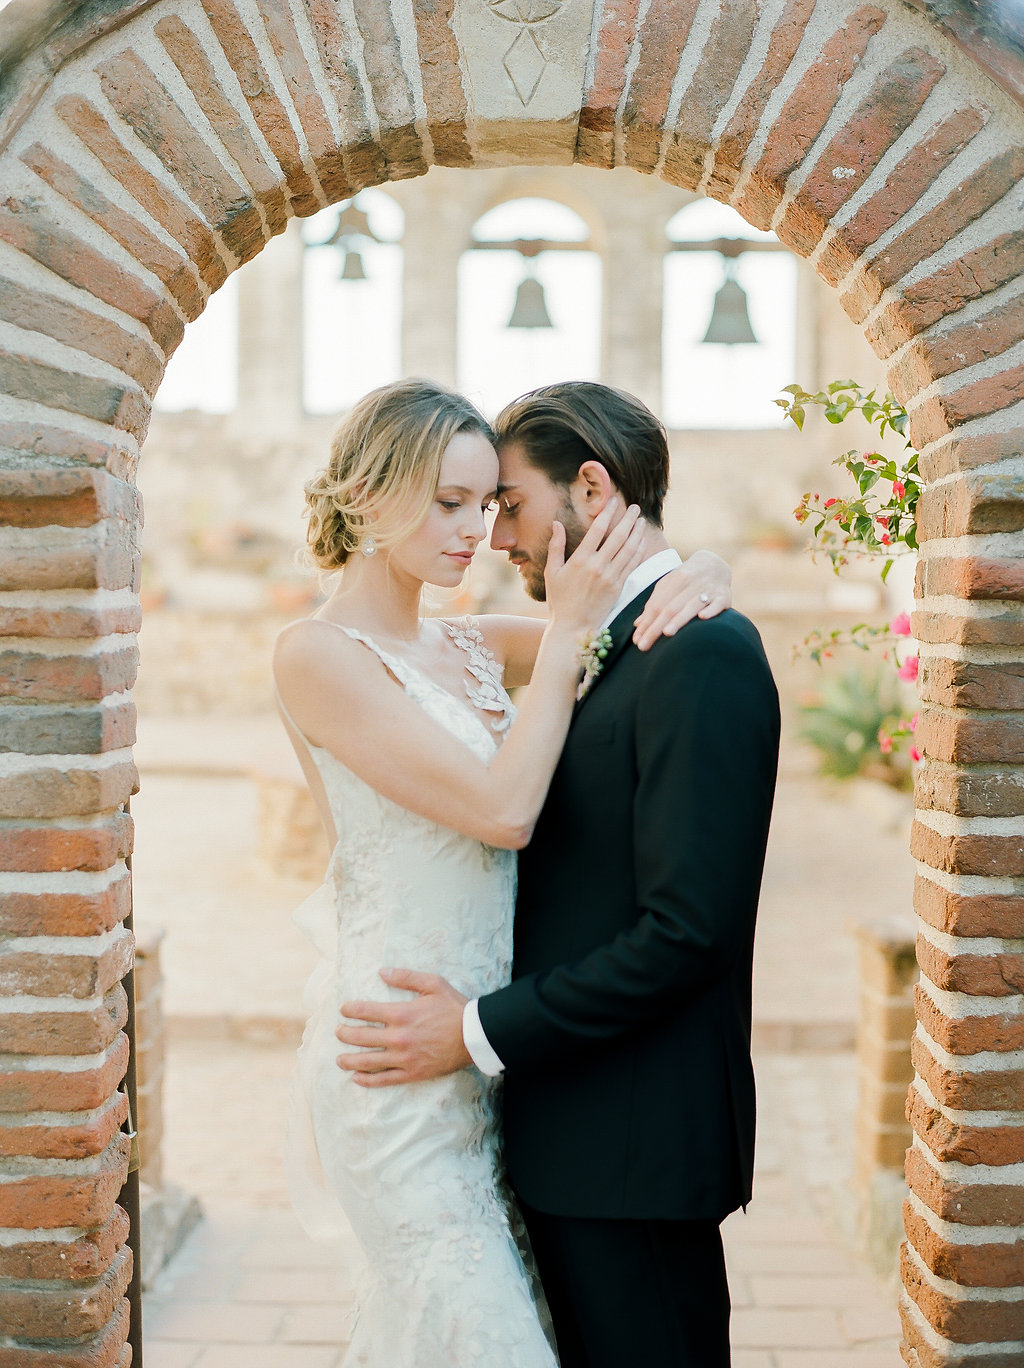 Spanish Mission Style Wedding Ideas Summer Flowers Finding Flora San Juan Capistrano European Venues California Bride and Groom Wedding Bells Bridals